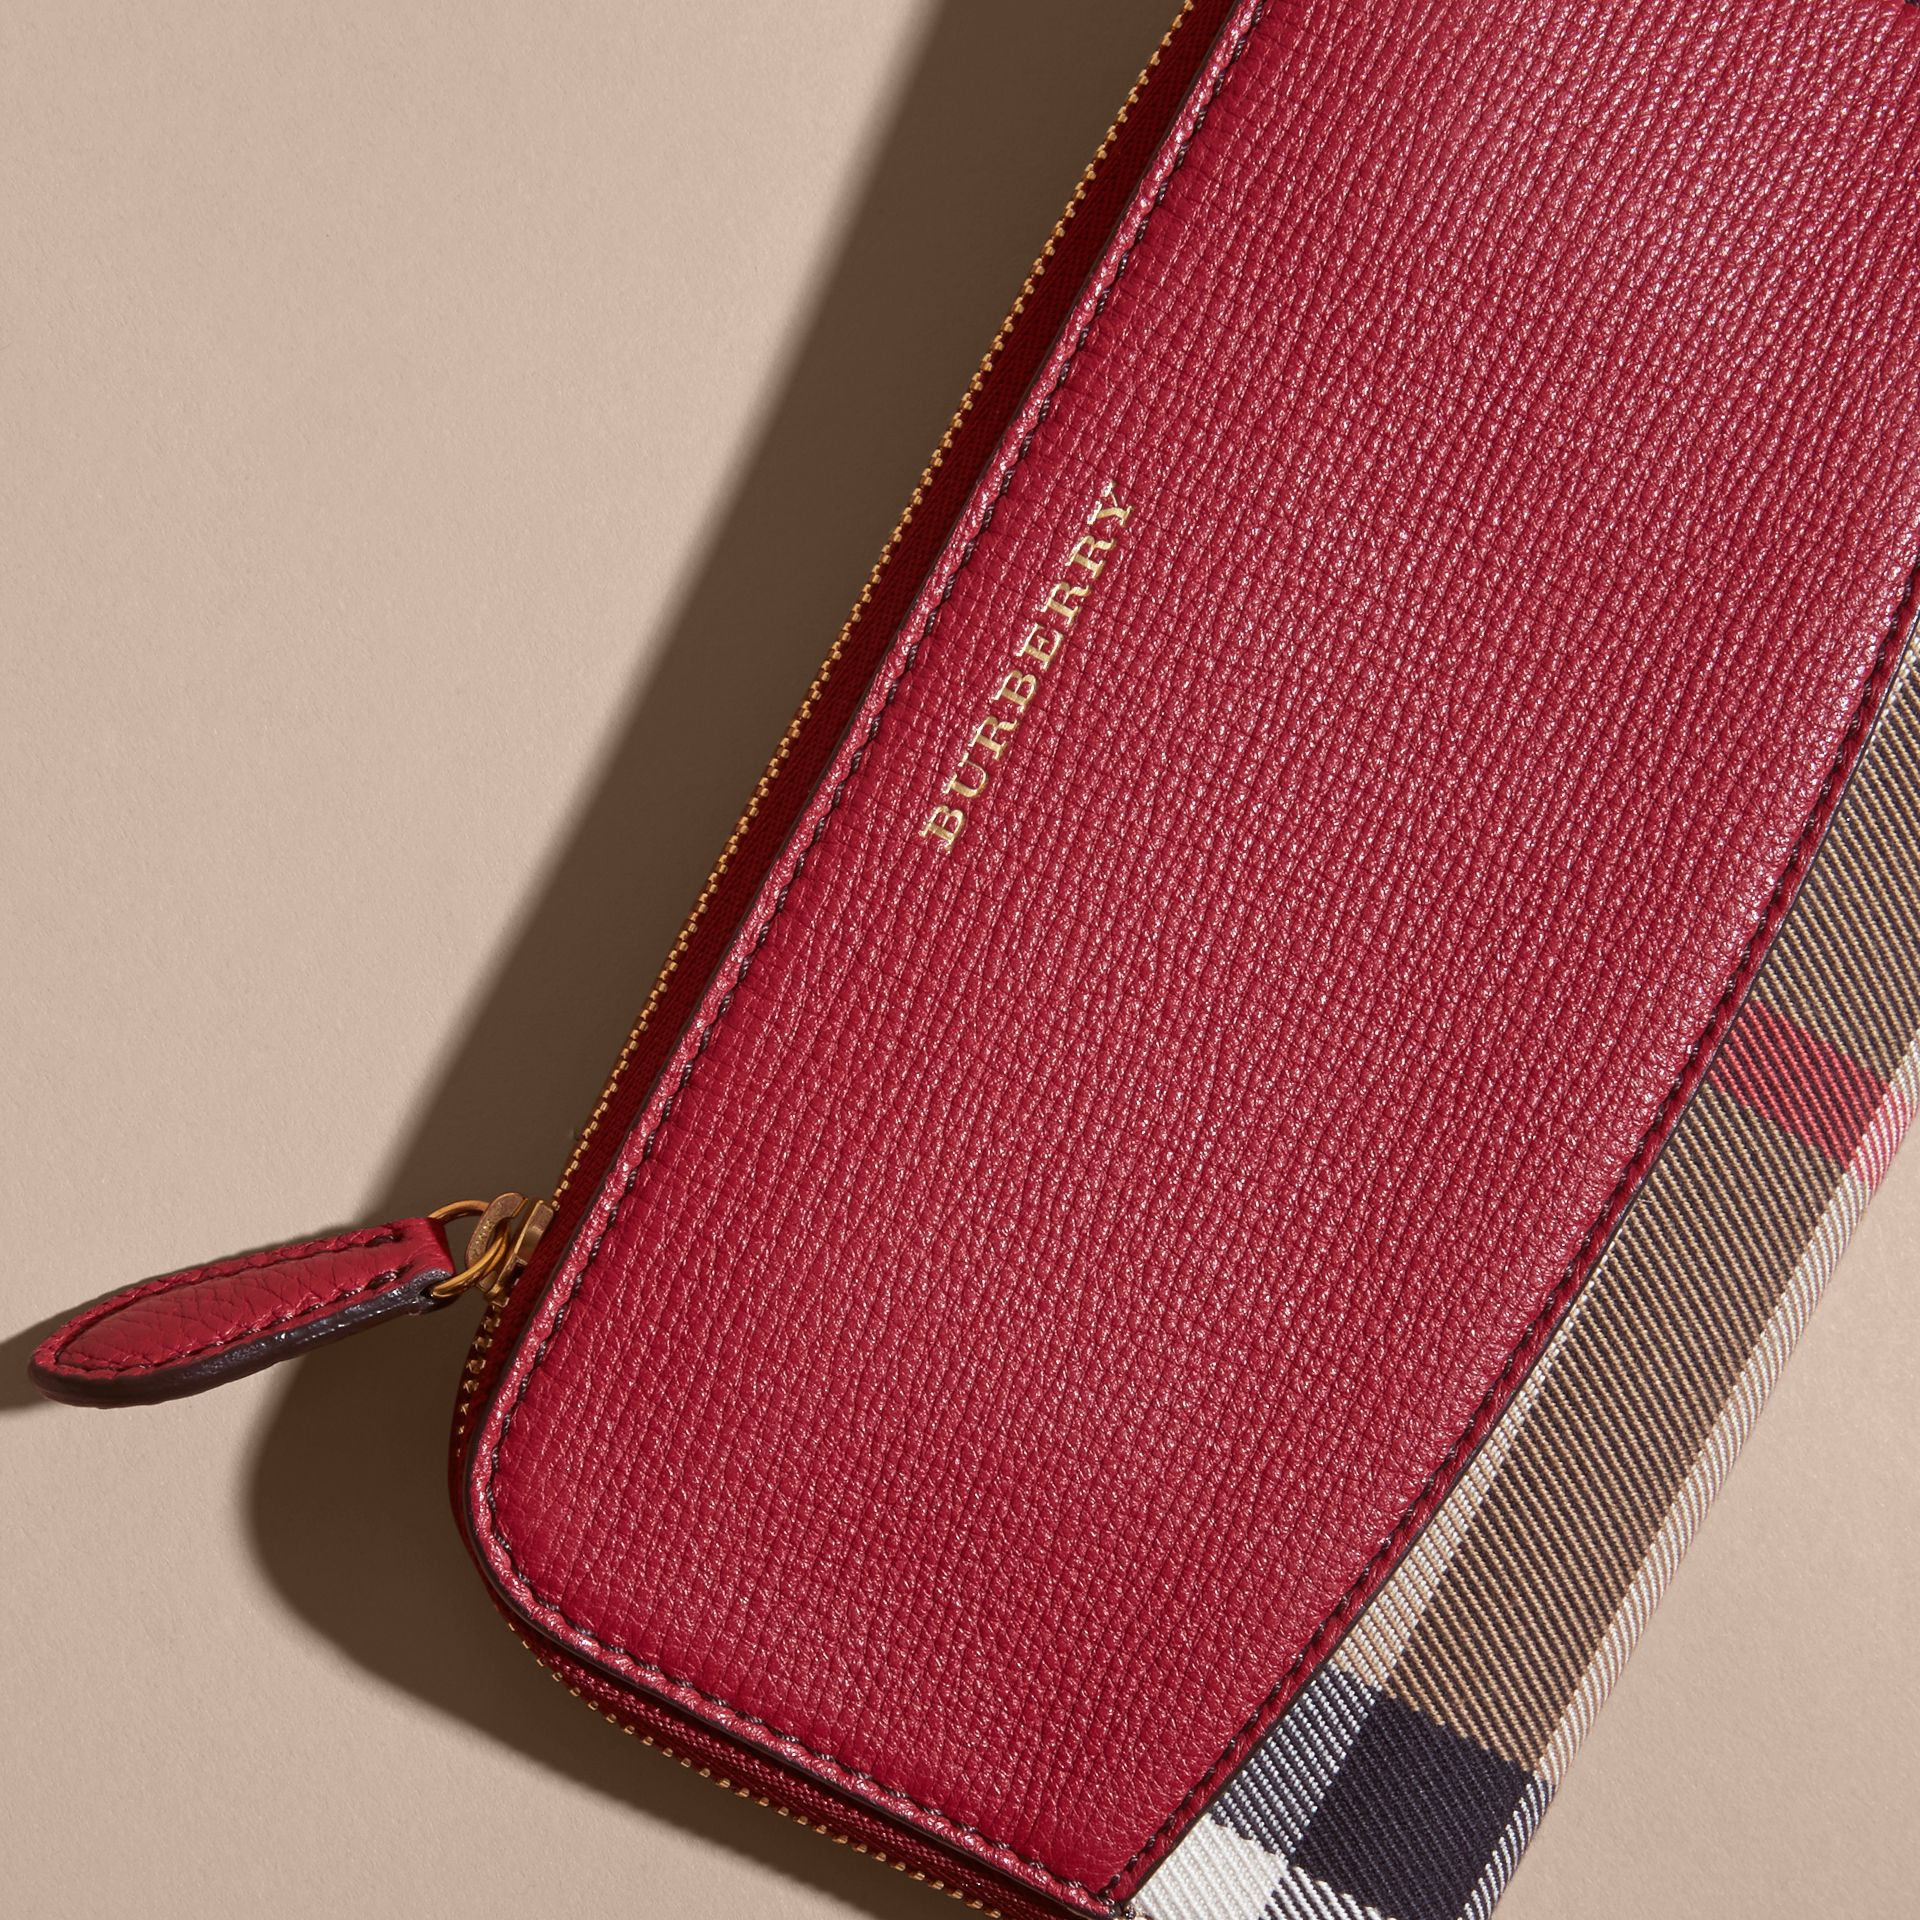 House Check and Leather Ziparound Wallet in Military Red - Women | Burberry Canada - gallery image 4